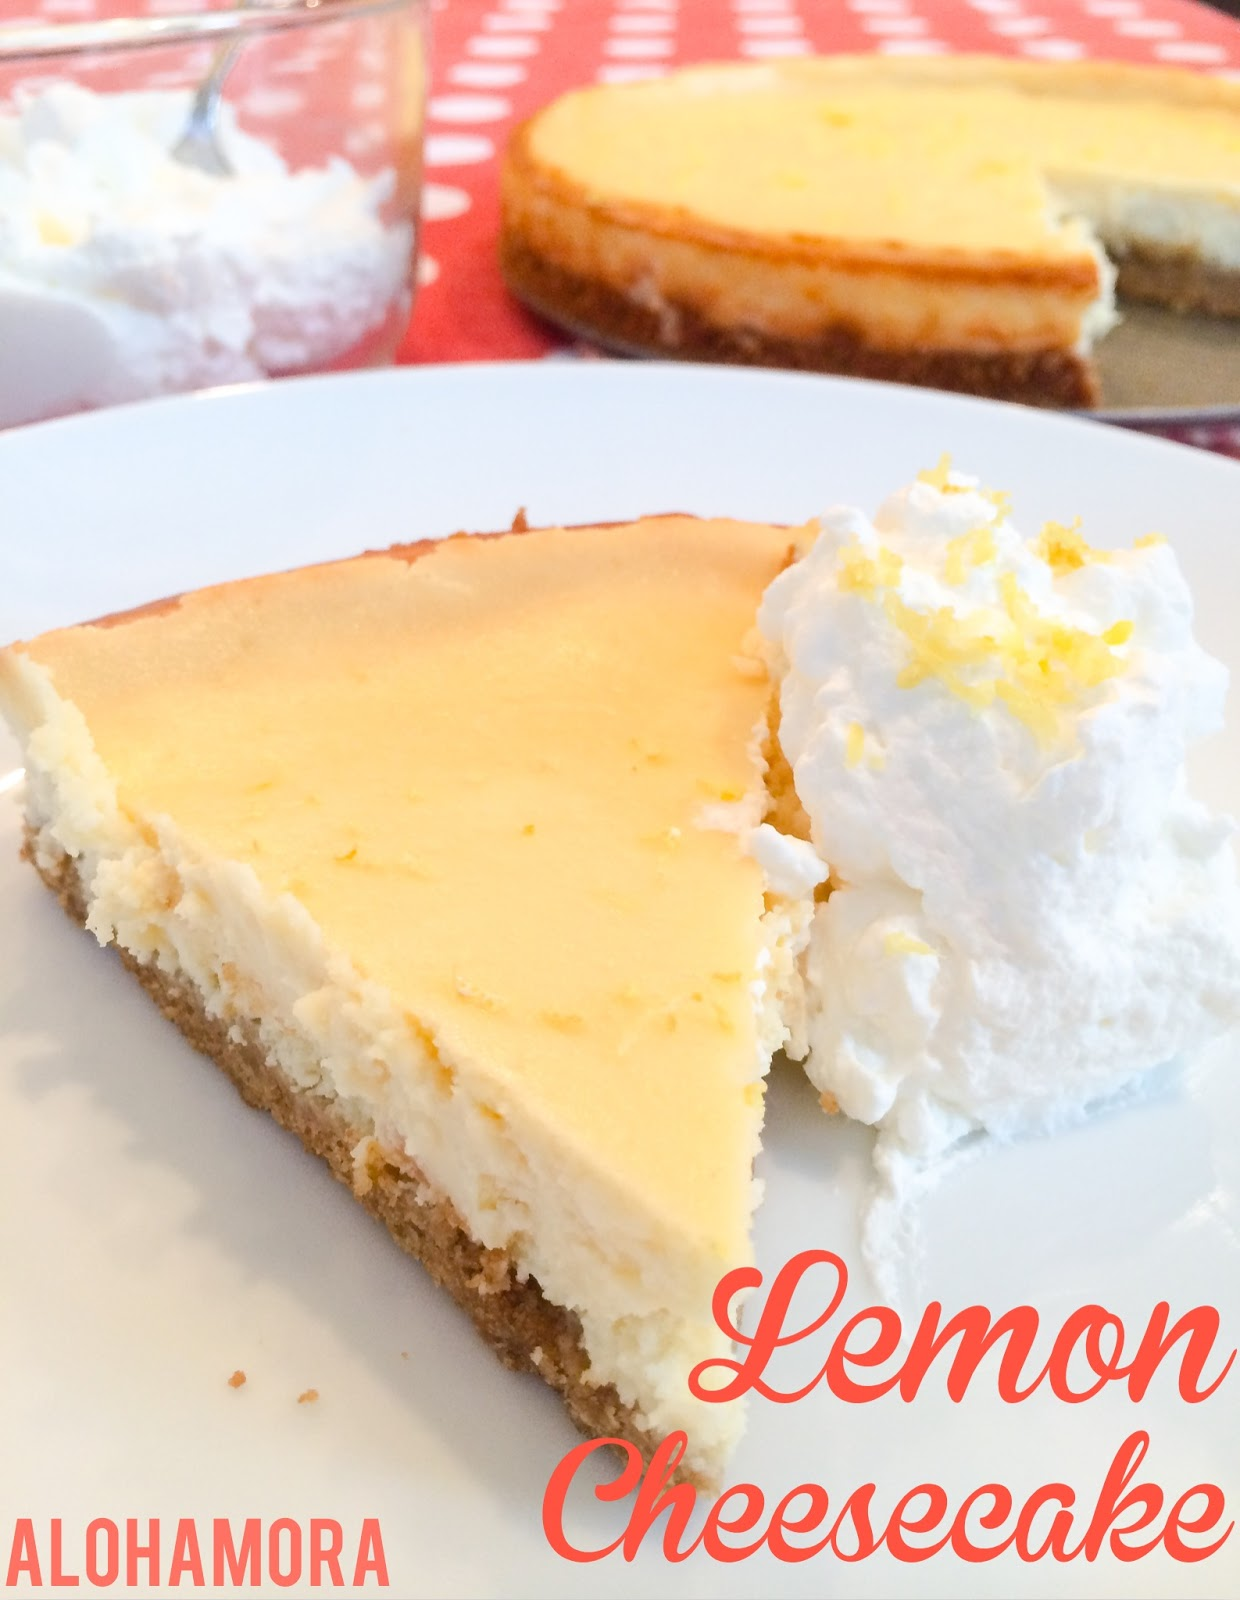 Lemon Cheesecake.  Simple, delicious, and not as hard as you think.   Just the right amount of Lemon pucker with the creamy richness from the cheesecake.  Yummy! Alohamora Open a Book http://alohamoraopenabook.blogspot.com/